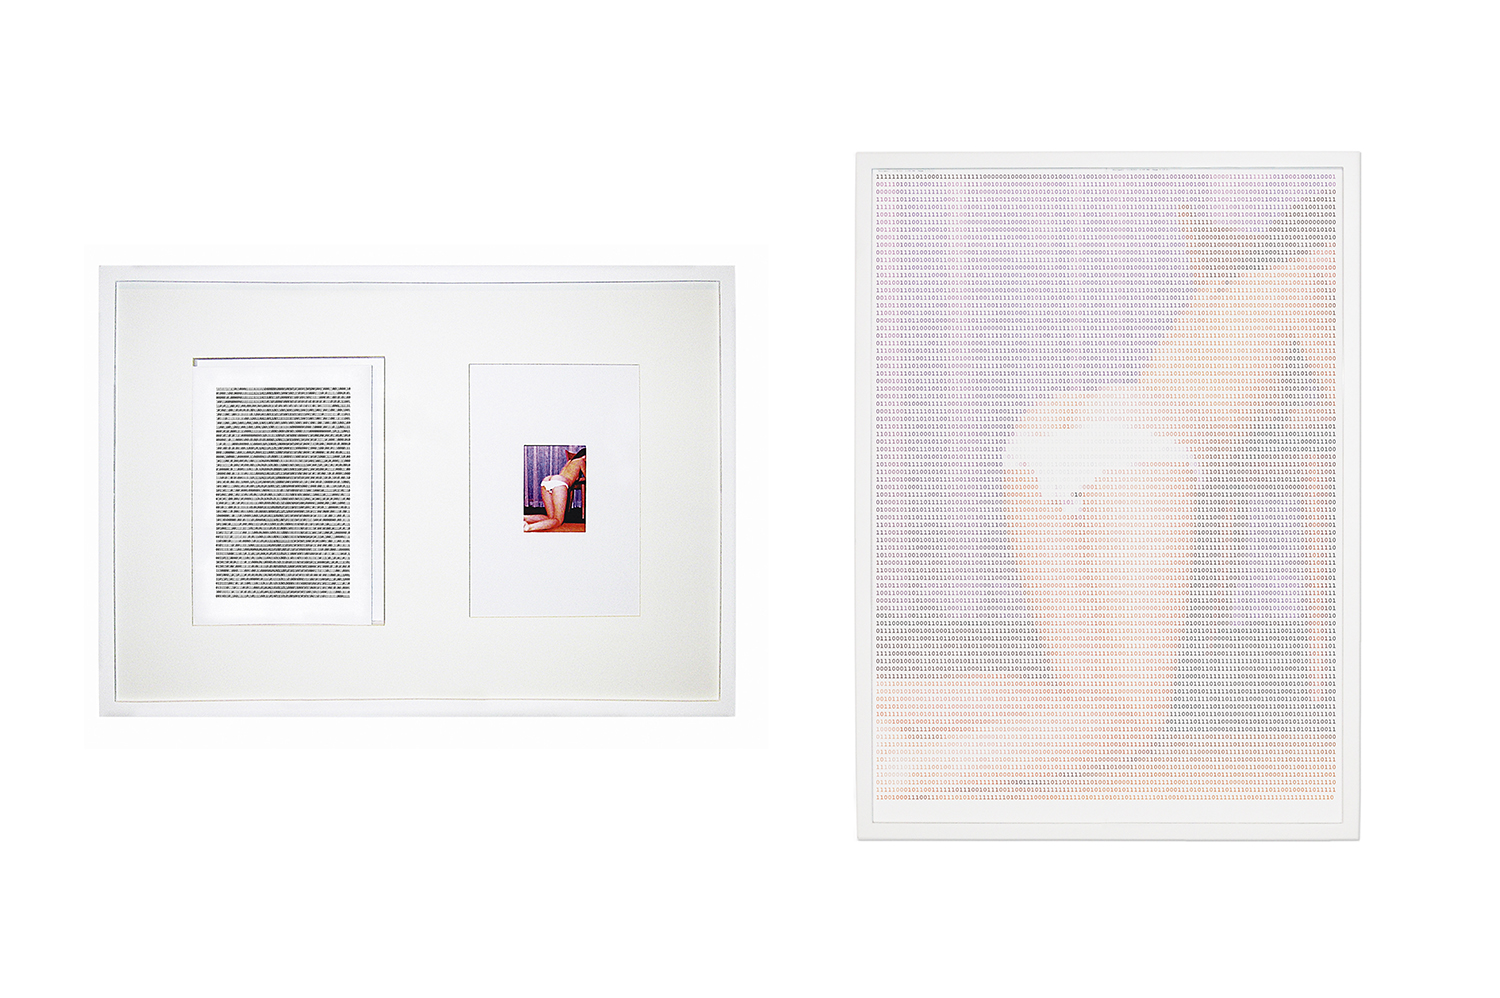 One and Three Photos (After Kosuth) • 2003 • Photograph, digital print, 4 A3 photo paper sheets, 124 A4 sheets with printed binary code • 19.7 x 28.7 in, 31.9 x 22.8 in